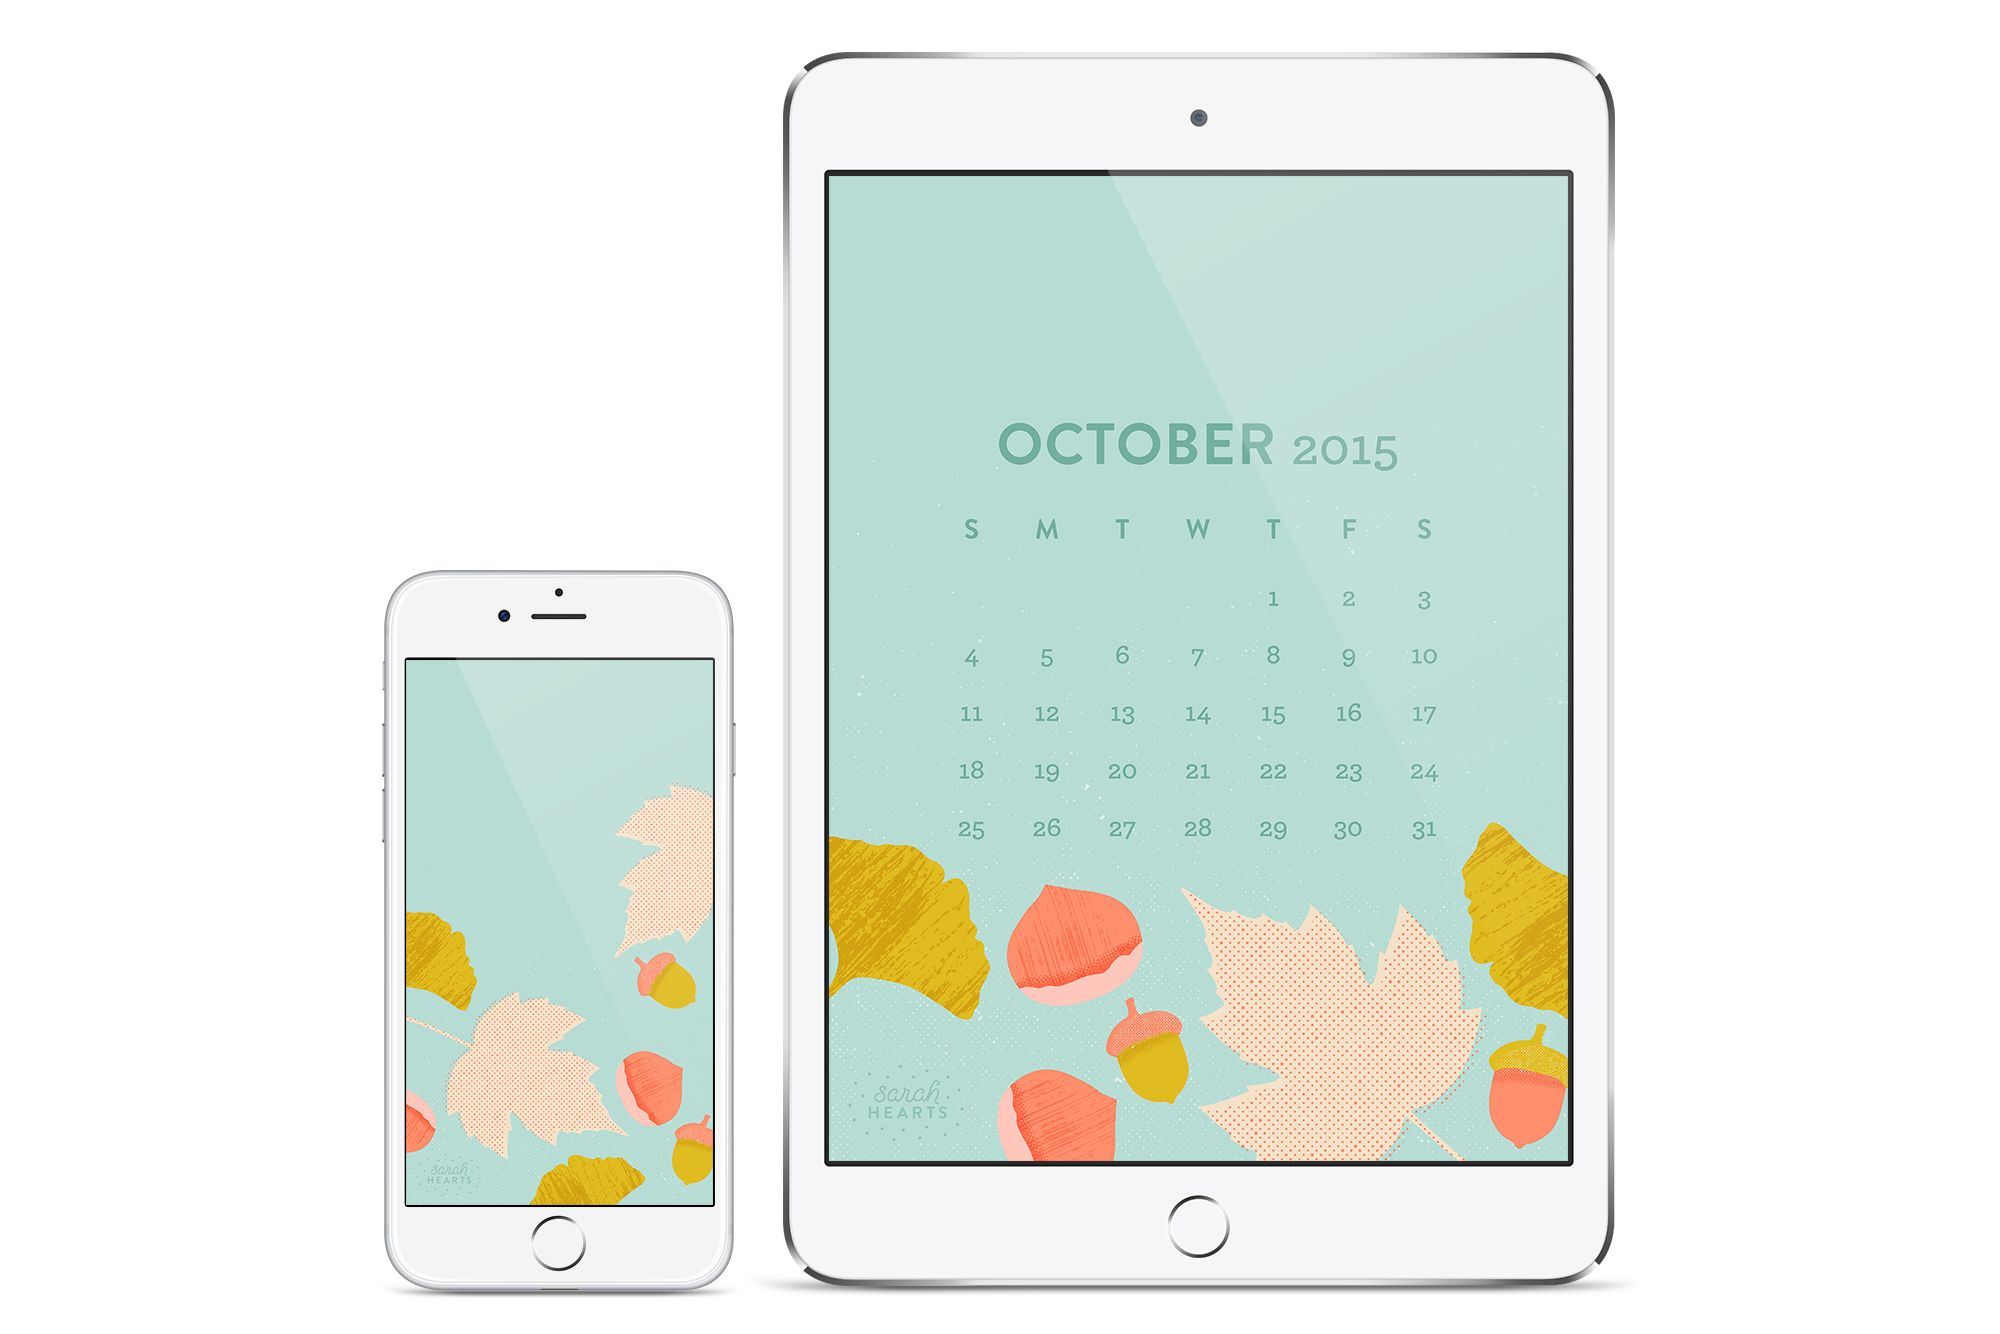 october 2015 calendar wallpaper | scrap downloads | pinterest